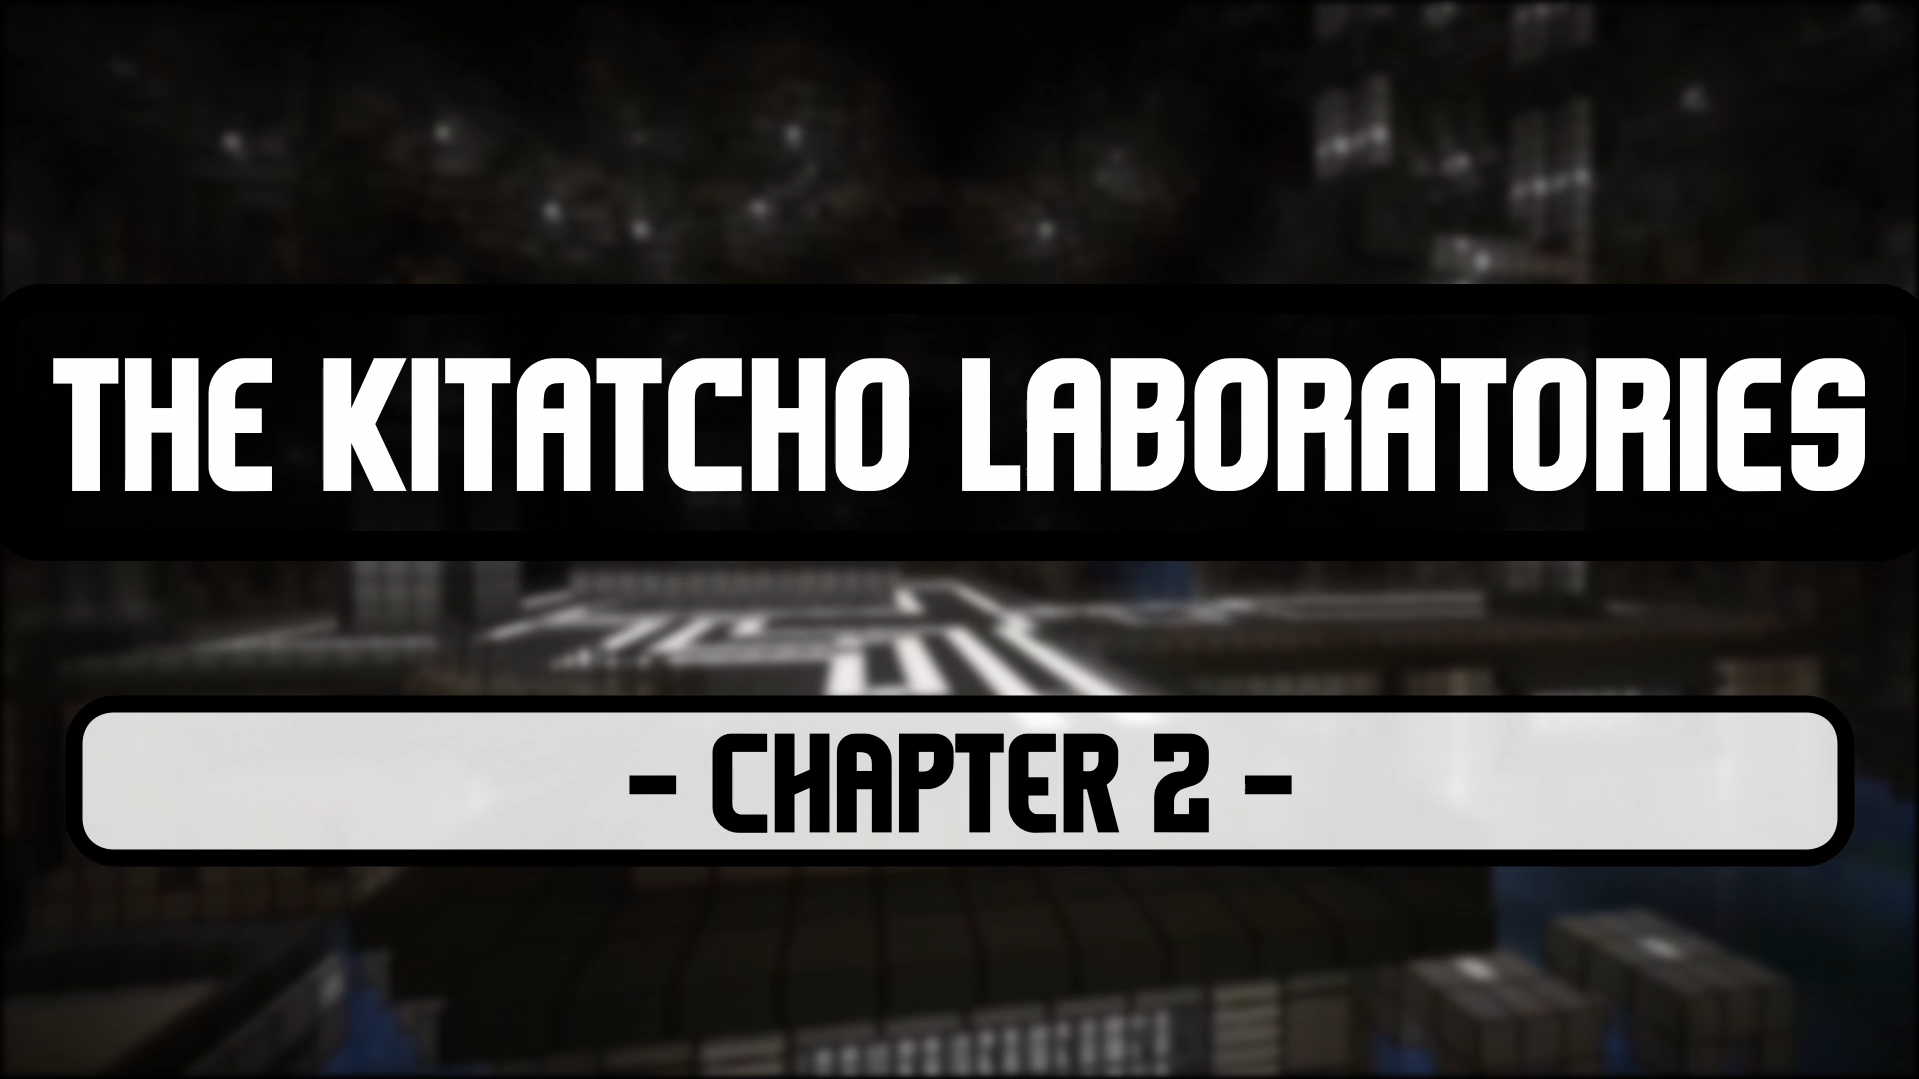 Descargar The Kitatcho Laboratories - Chapter 2 para Minecraft 1.16.5